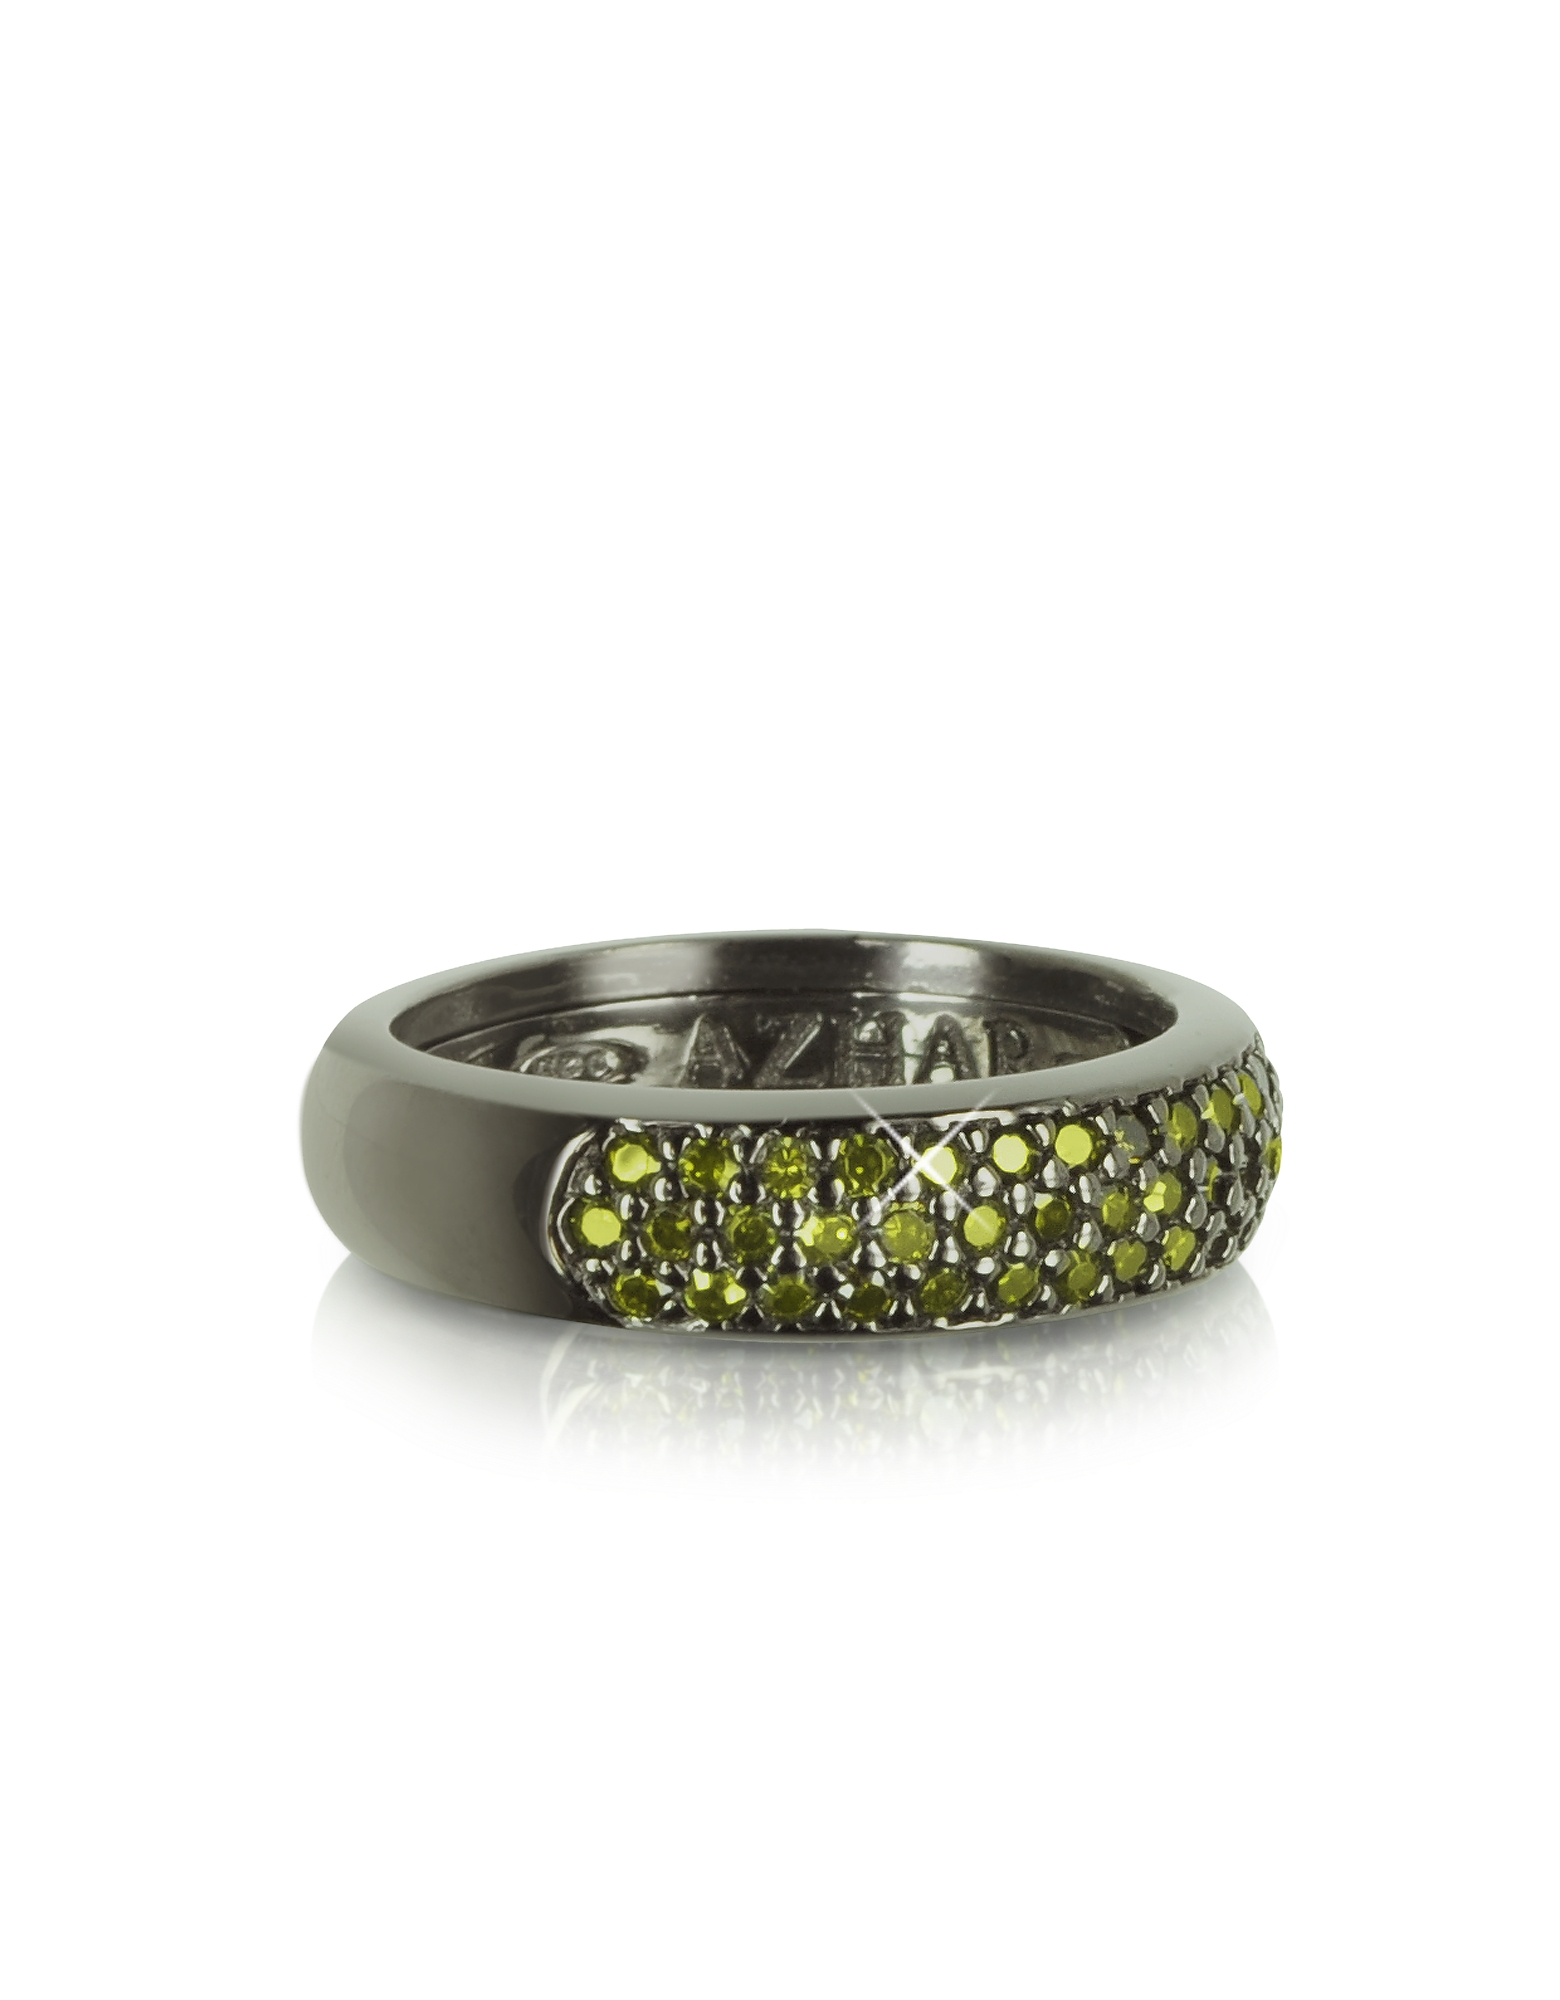 Azhar Designer Rings, Olive Green Cubic Zirconia and Sterling Silver Ring